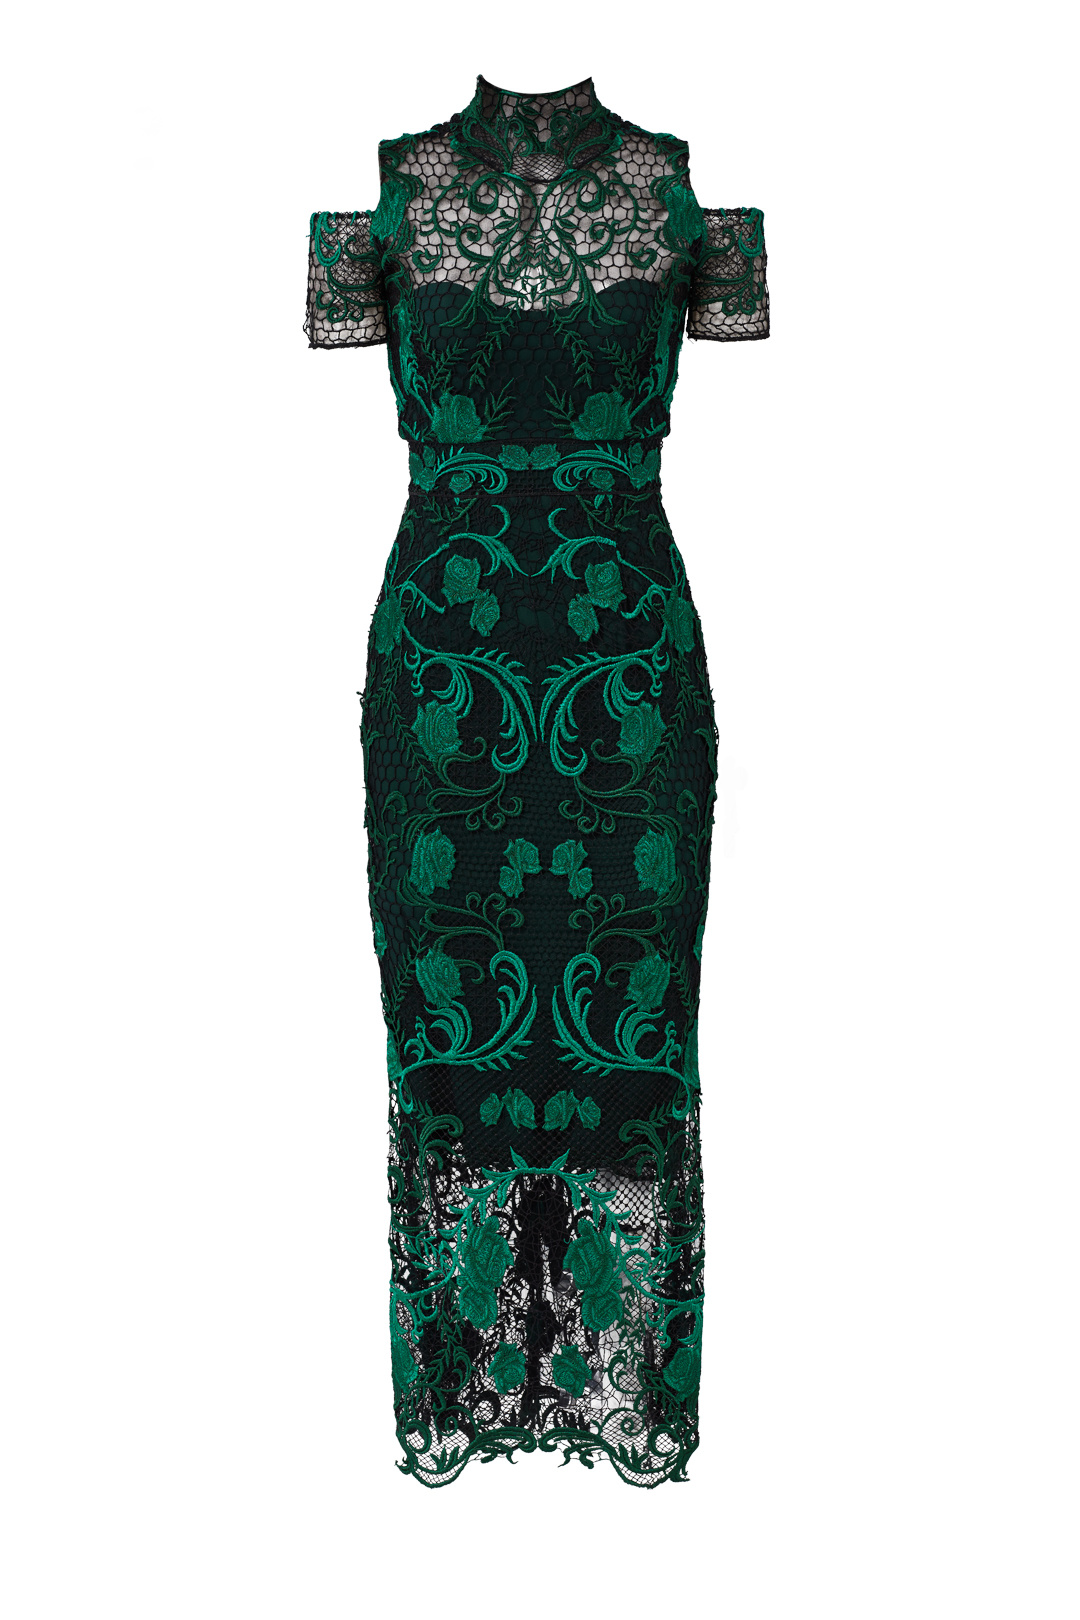 Marchesa Notte Green.jpg